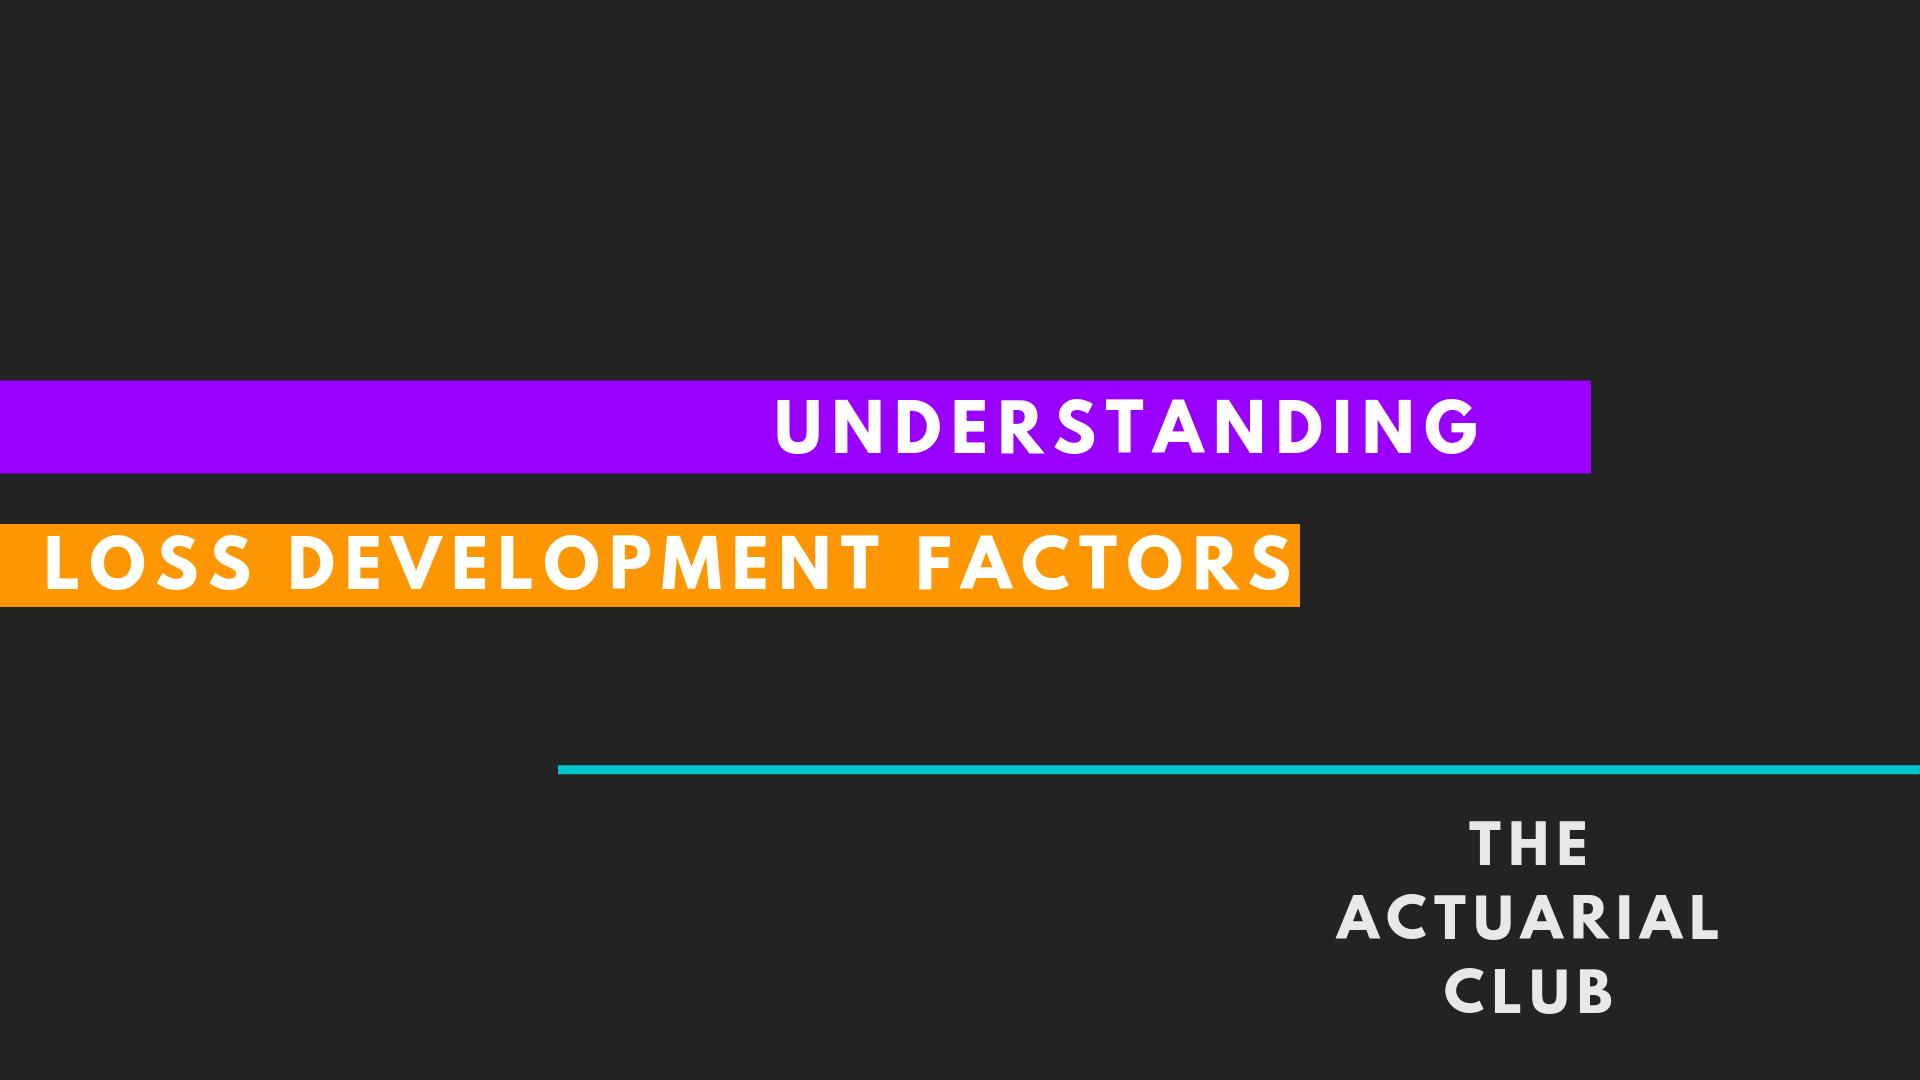 Loss development factors (LDF)